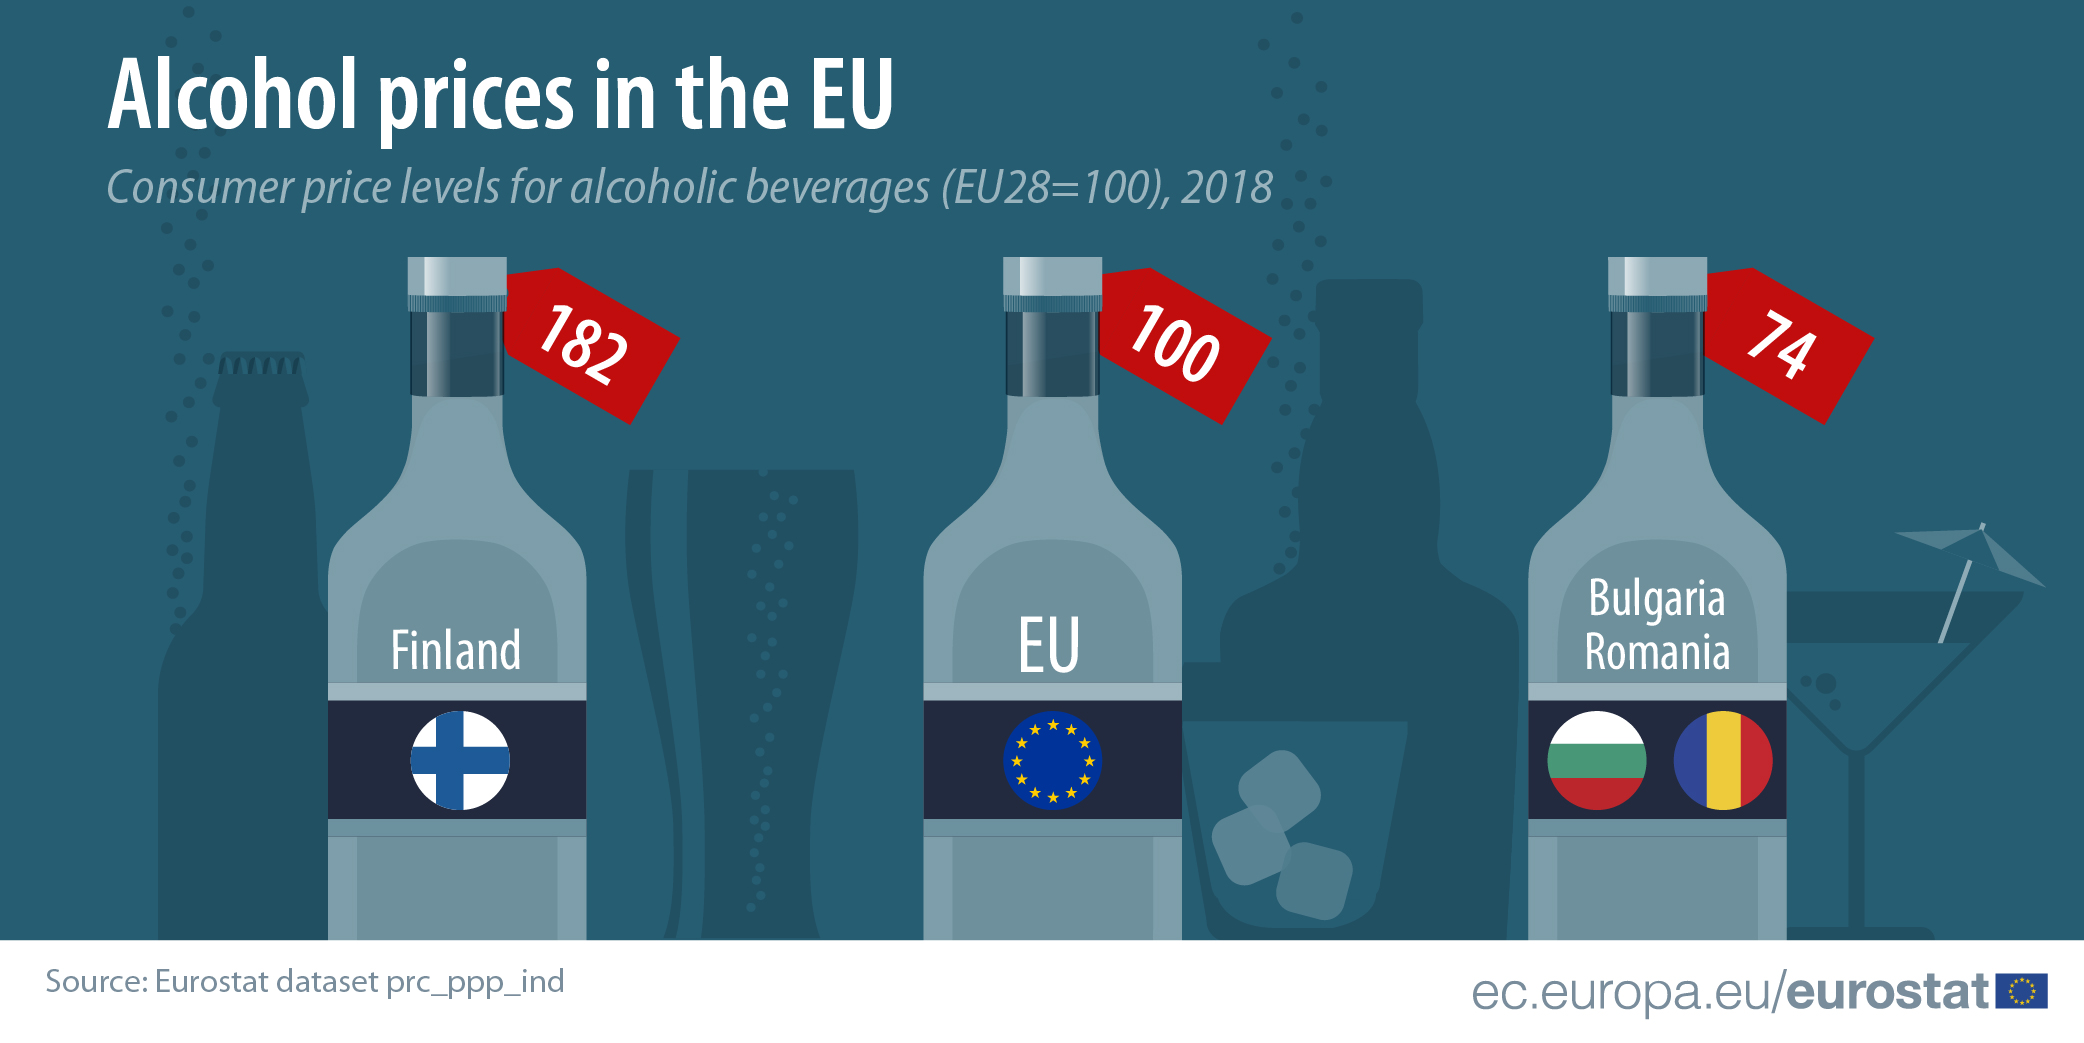 Infographic showing highest and lowest price levels for alcohol relative to the EU average, 2018